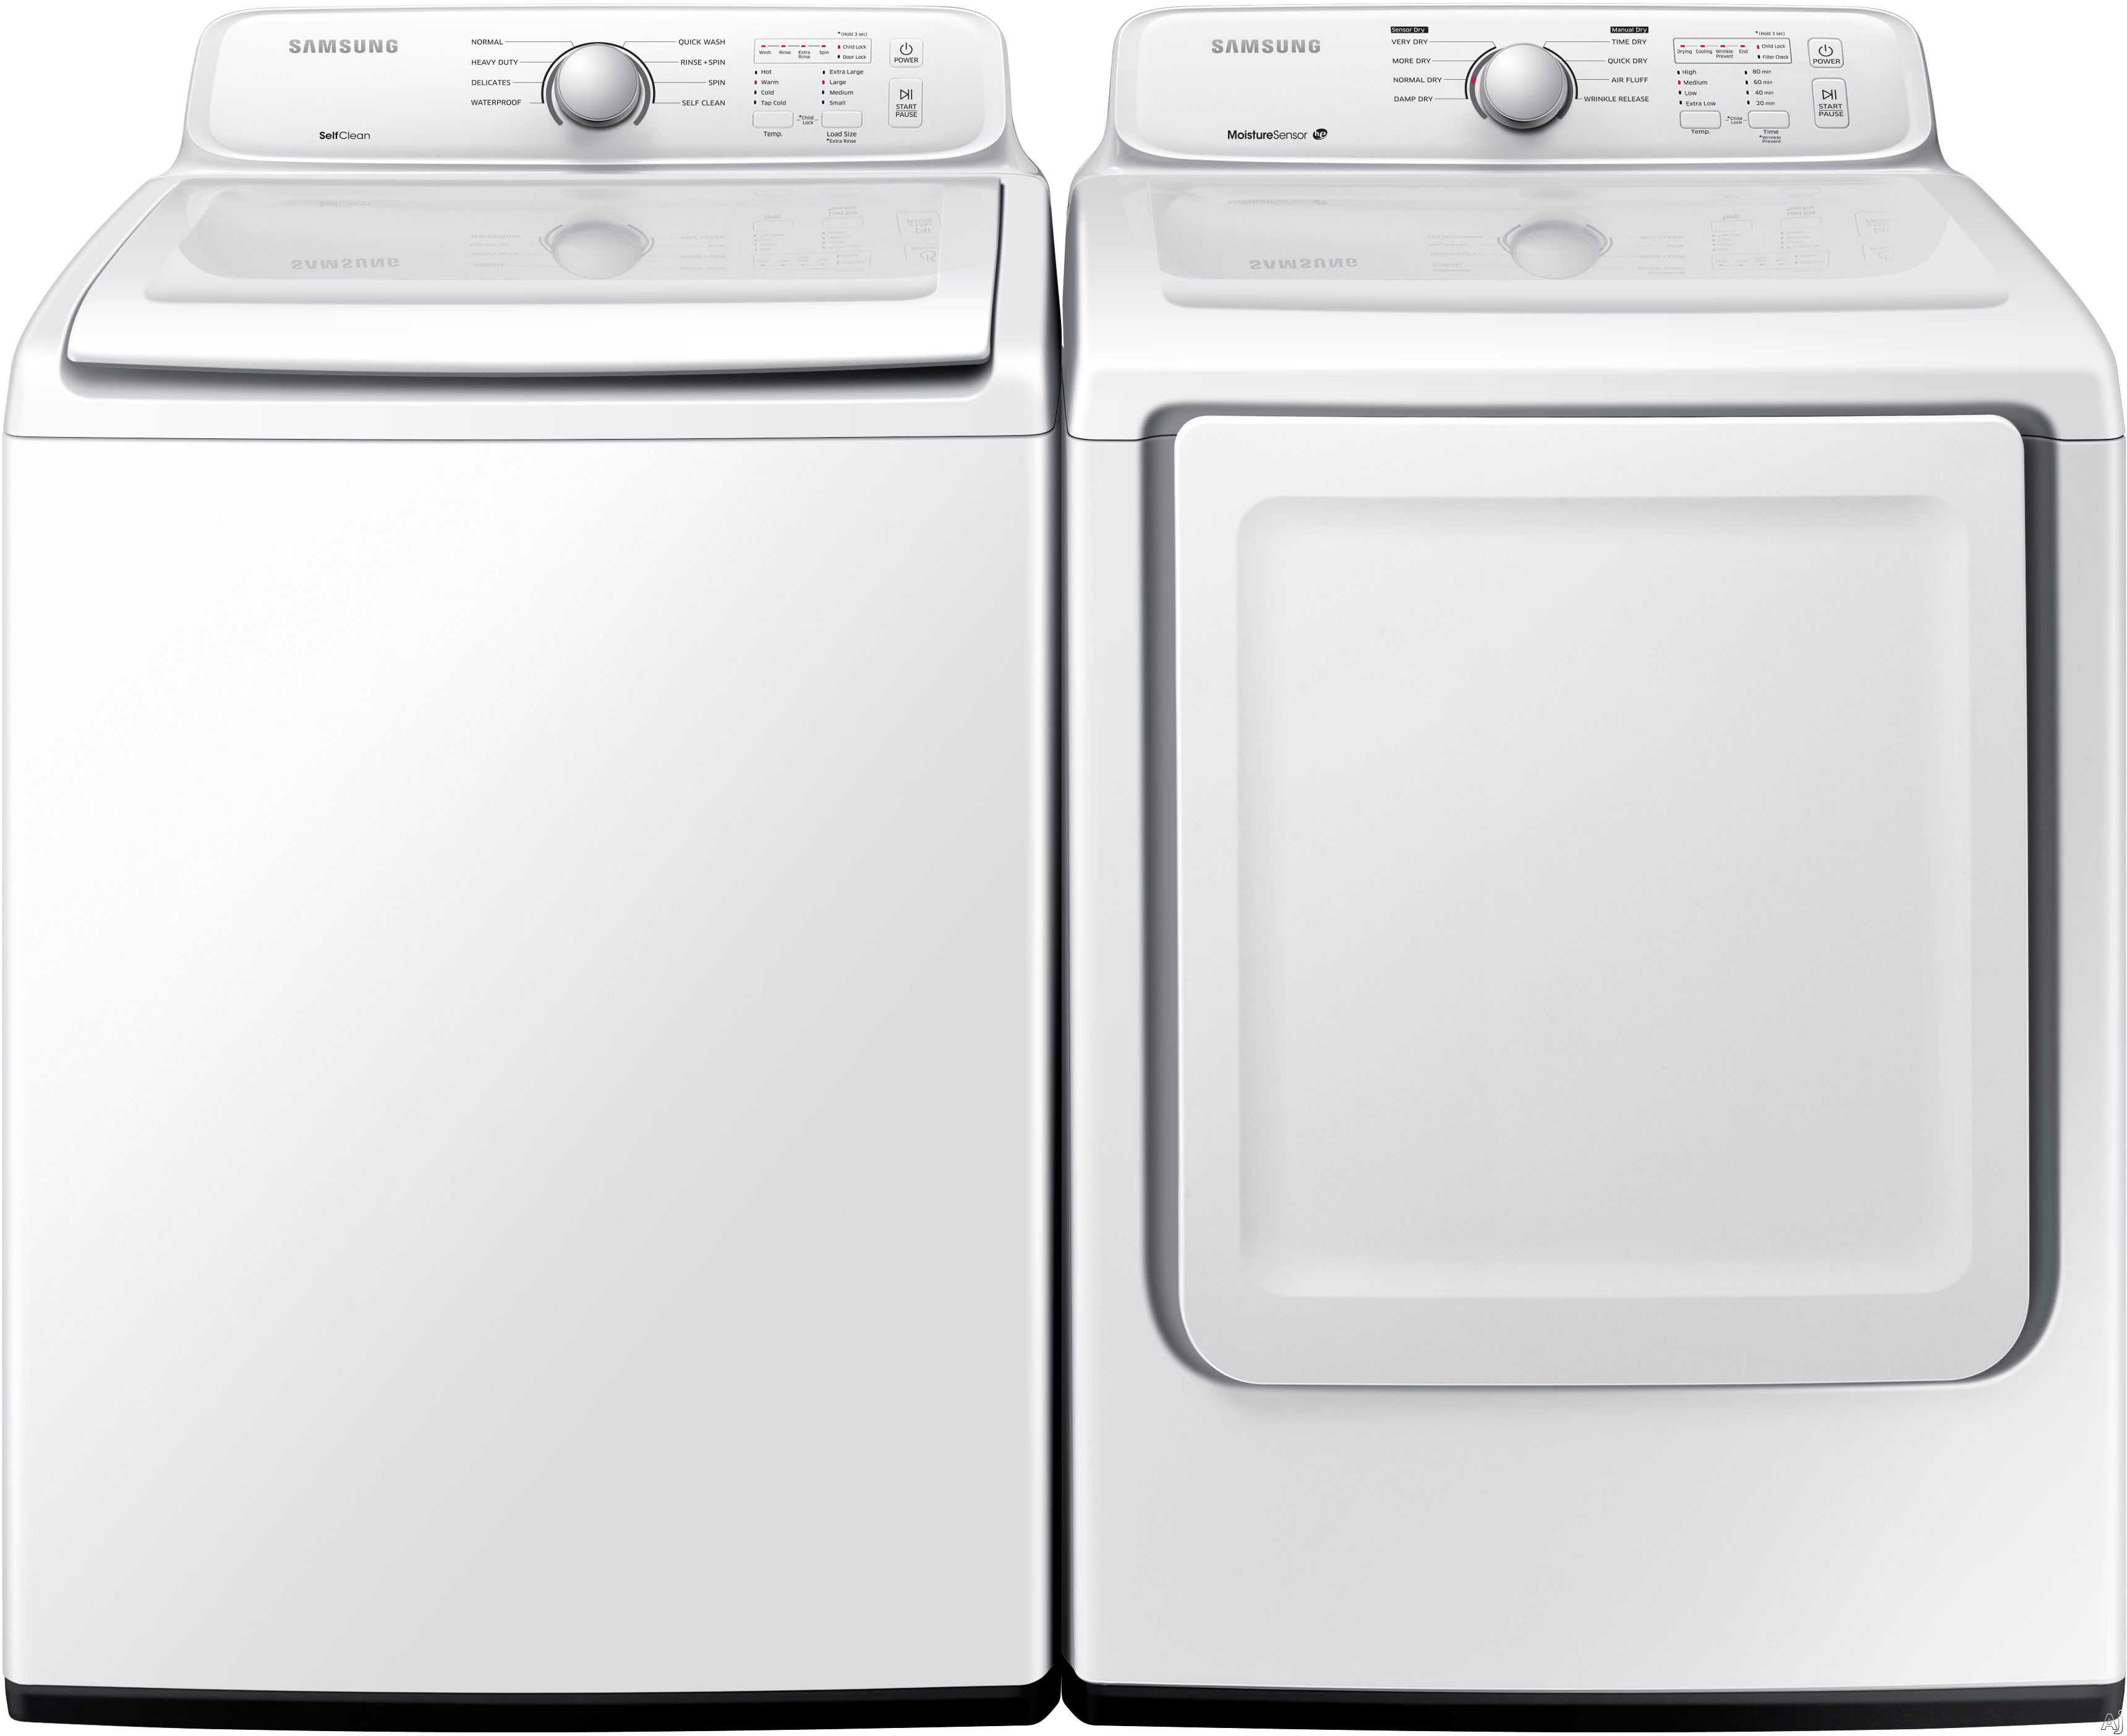 Washer And Dryer Dimensions Front Loading Samsung Sam3000tl Samsung 3000 Series Top Load Washer Dryer Pair